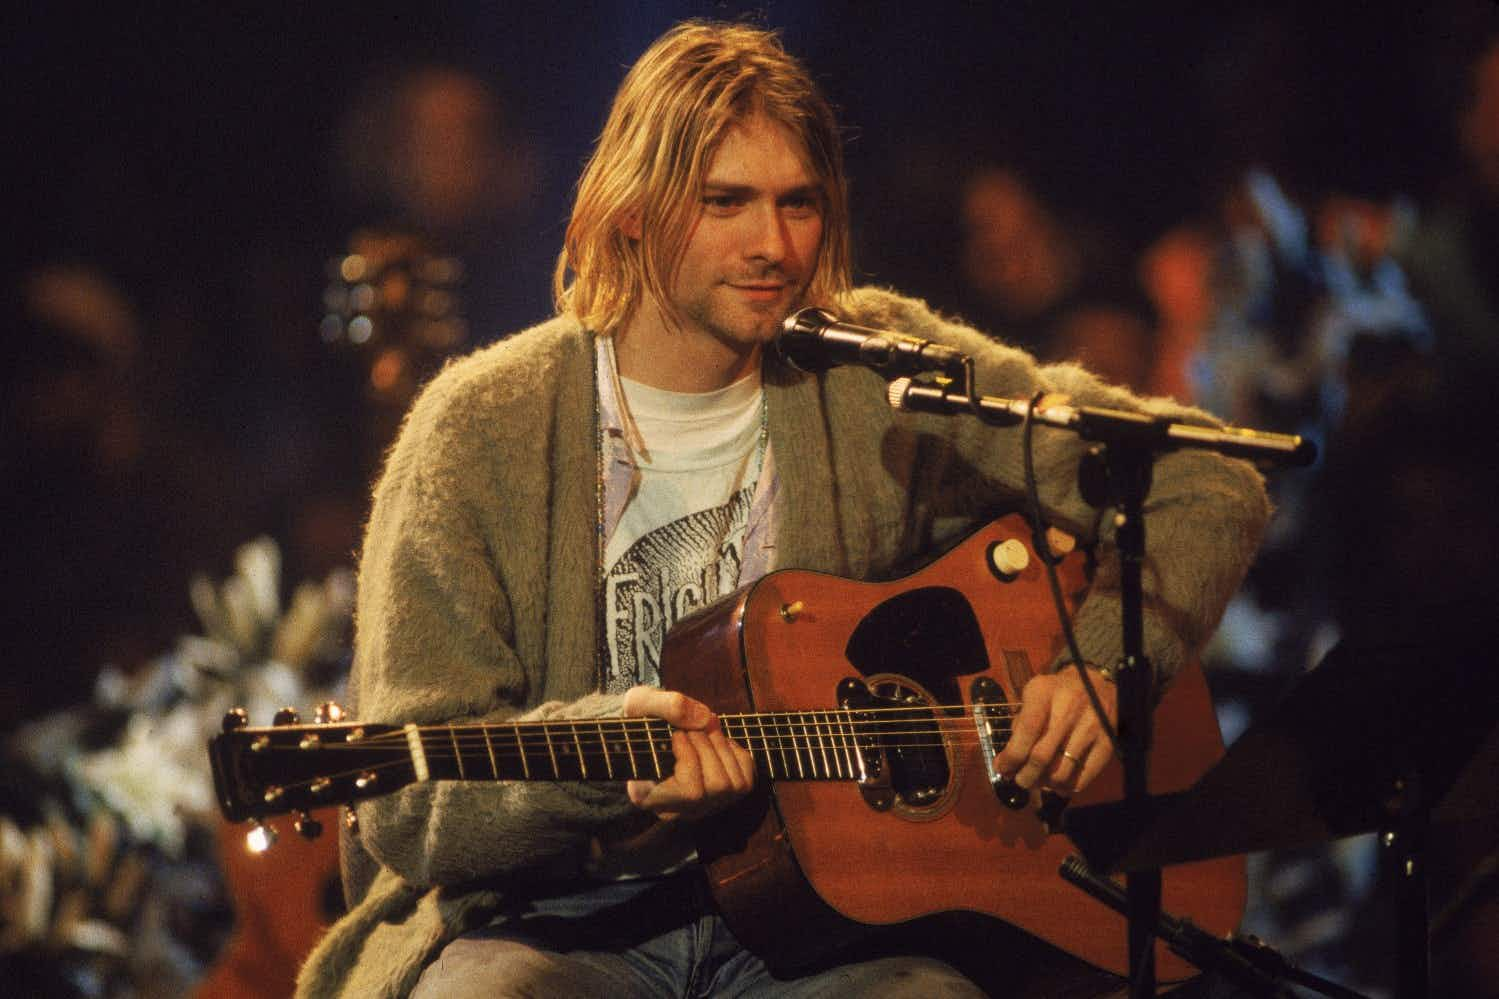 Kurt Cobain's private possessions to go on display in Ireland